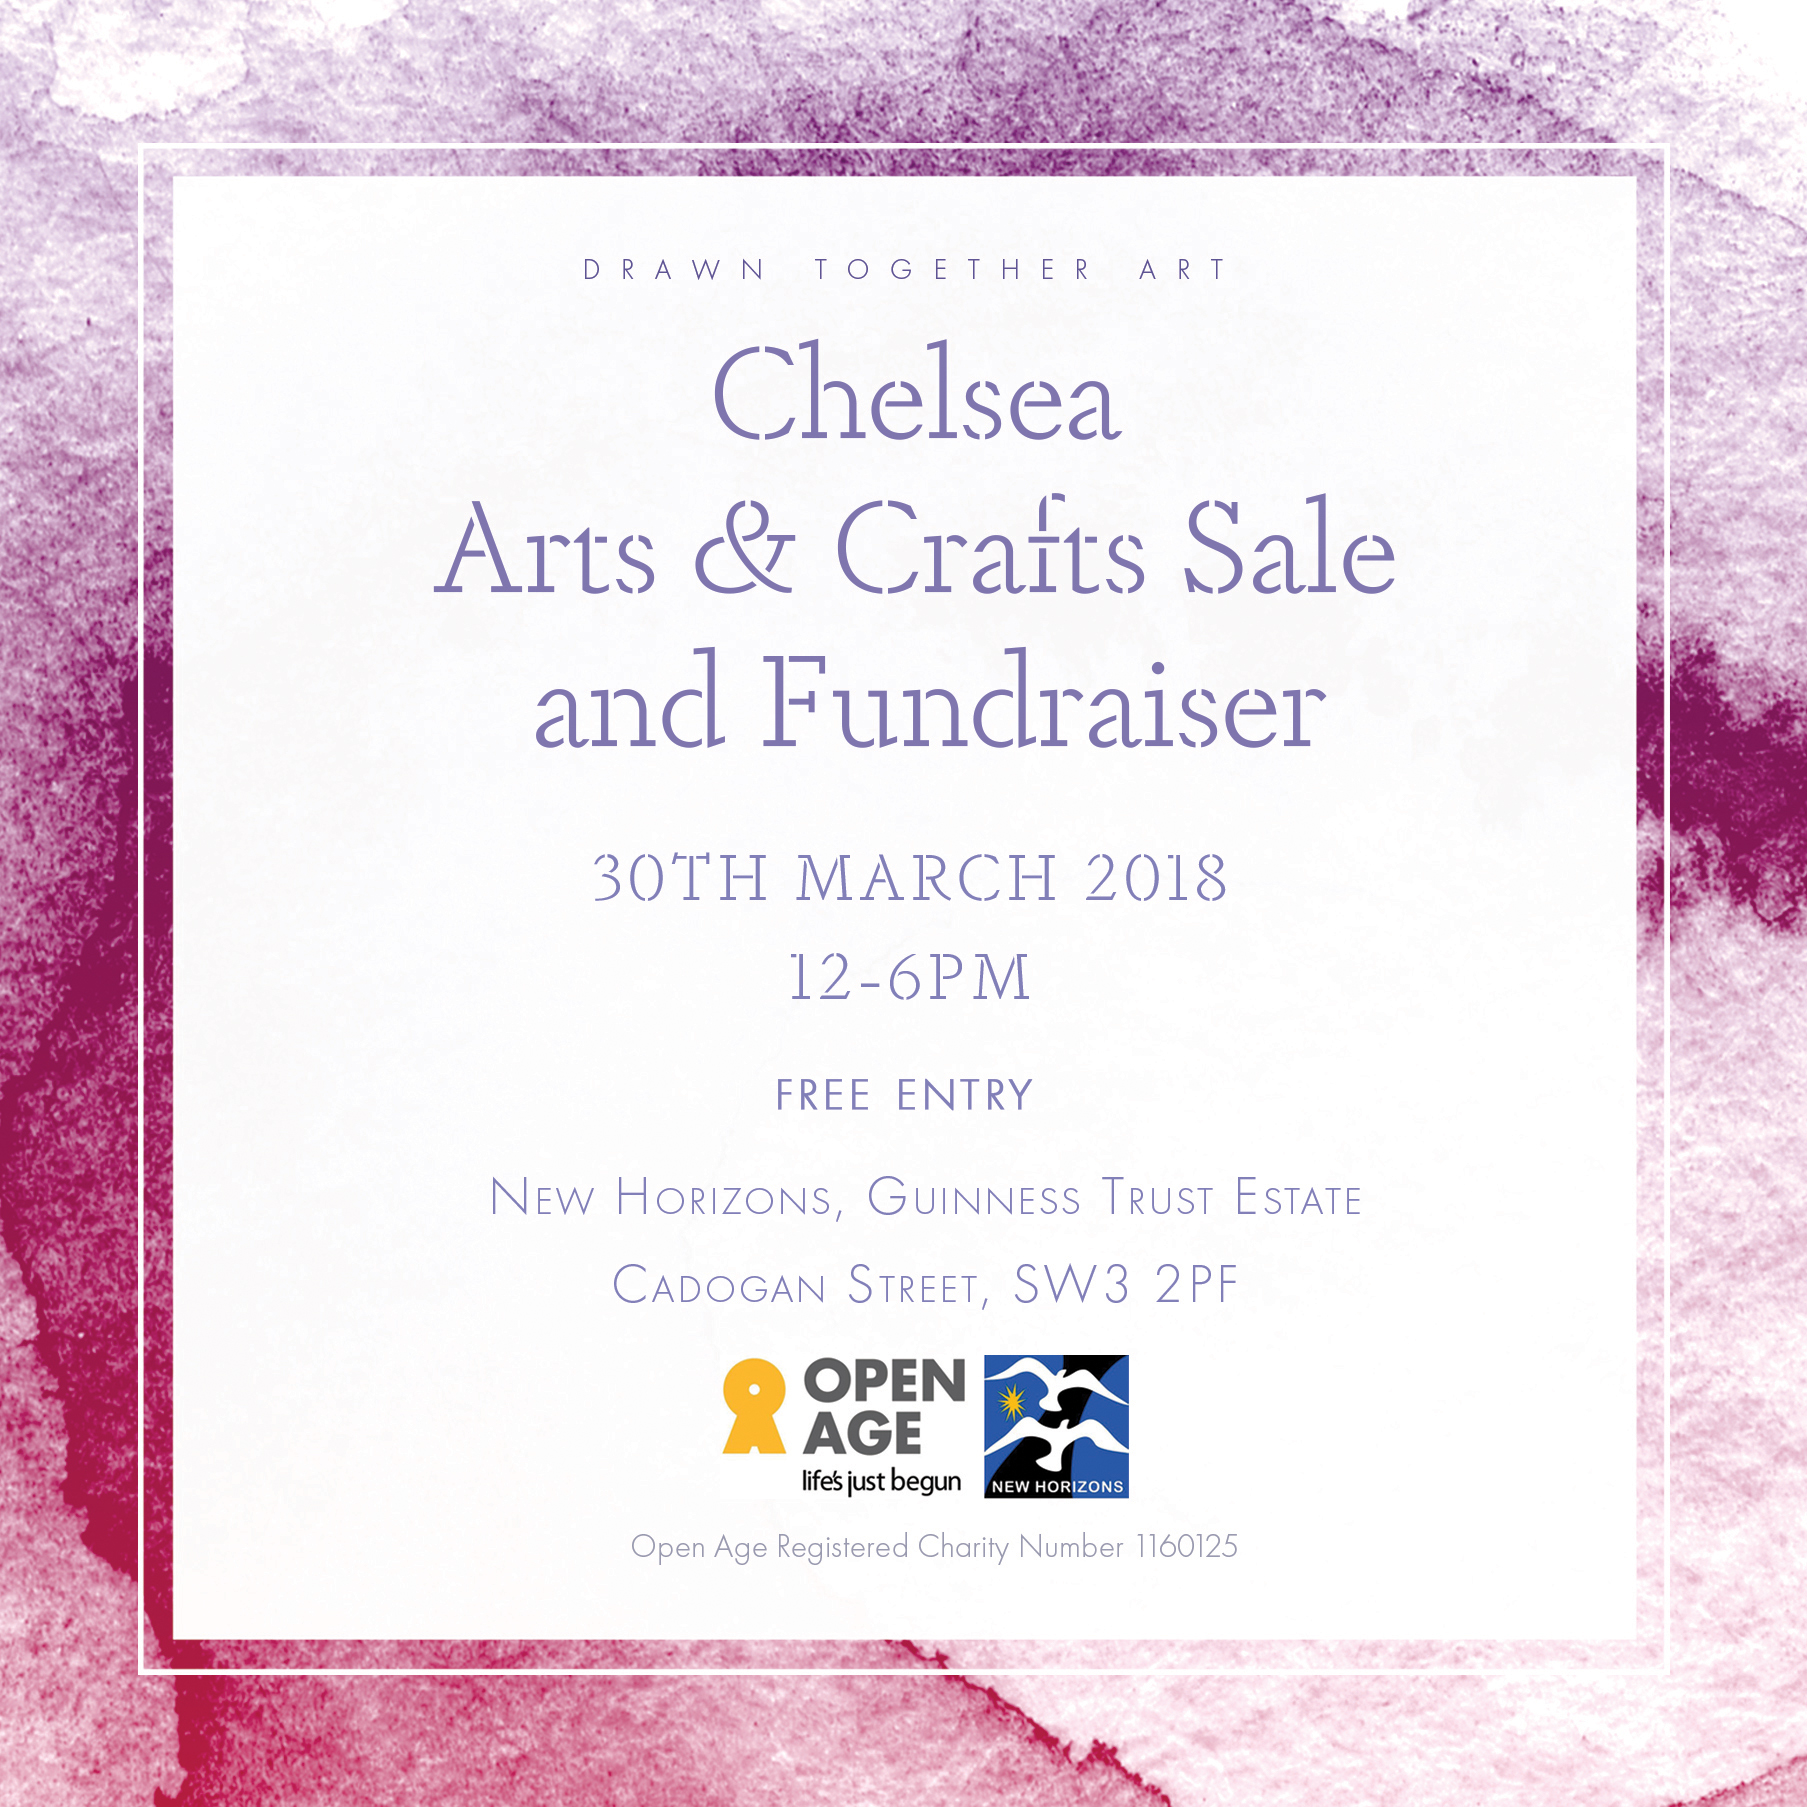 Chelsea Arts and Crafts Fair Fundraiser Art Exhibition 30th march